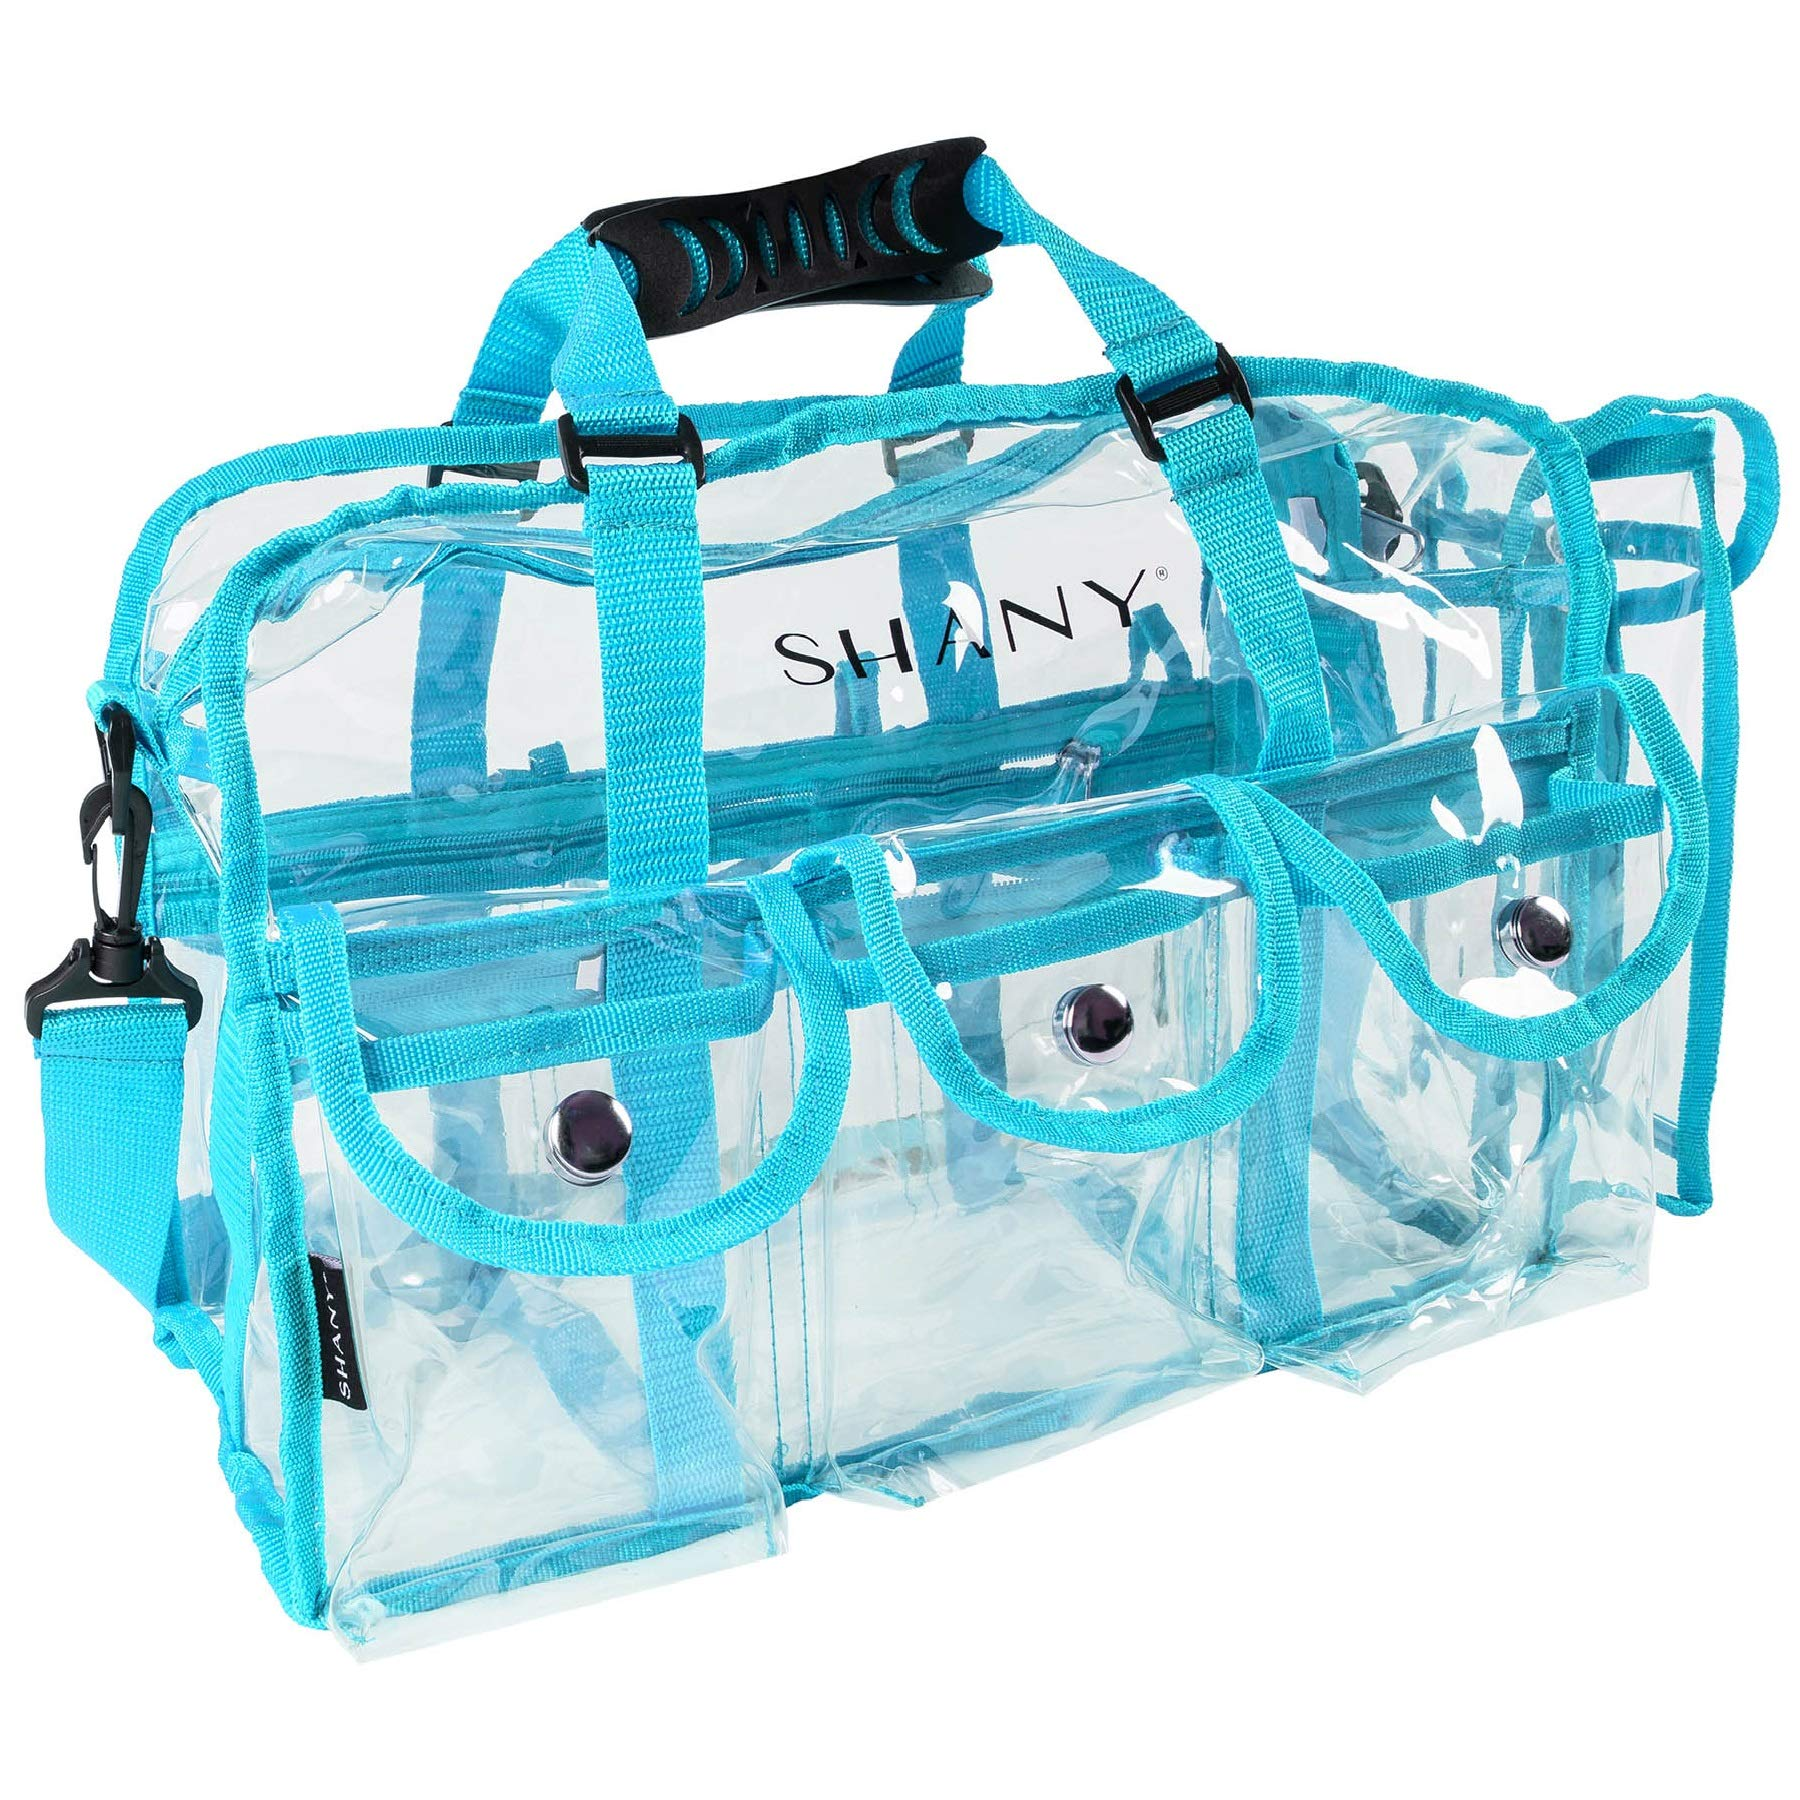 SHANY Clear PVC Makeup Bag - Large Professional Makeup Artist Rectangular Tote with Shoulder Strap and 5 External Pockets - BLUE